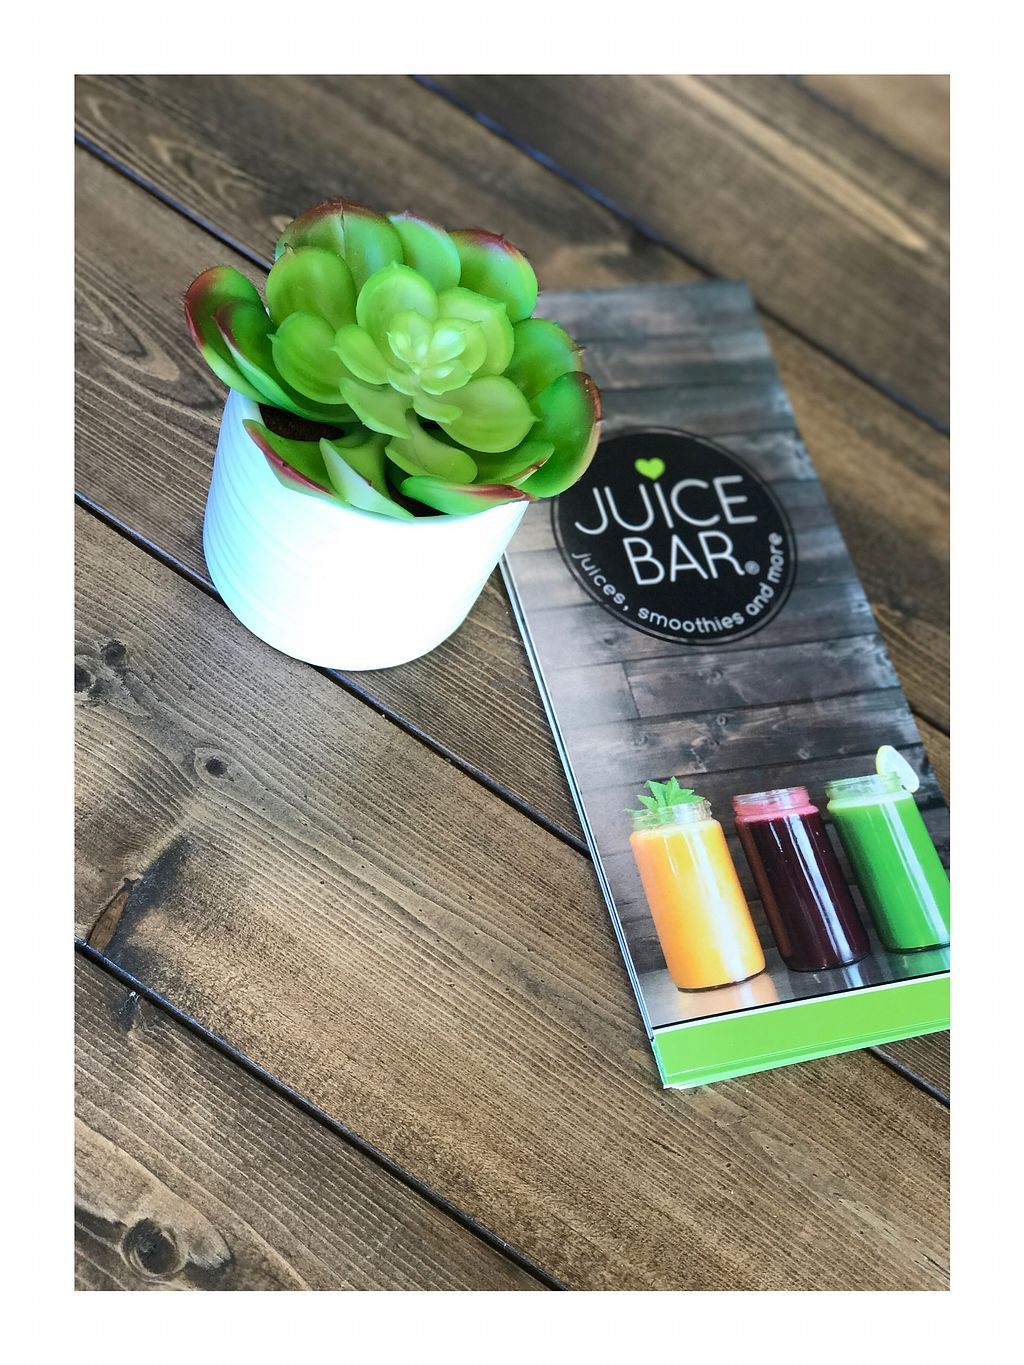 """Photo of I Love Juice Bar  by <a href=""""/members/profile/sobasirat"""">sobasirat</a> <br/>Greens & menu <br/> September 7, 2017  - <a href='/contact/abuse/image/100483/301801'>Report</a>"""